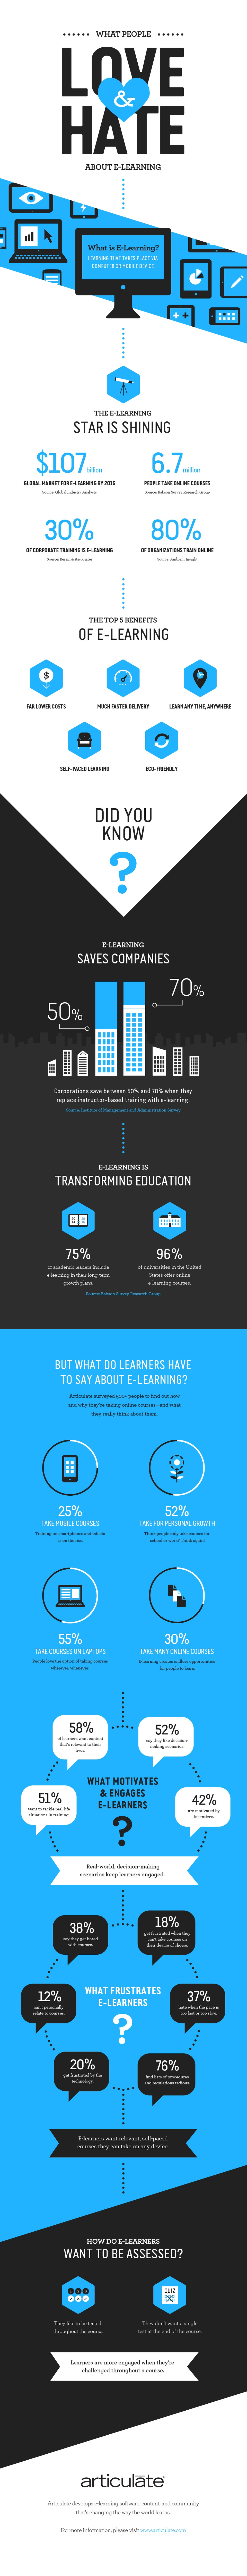 "Articulate-What-People-Love-Hate-about-e-Learning""-infographic"